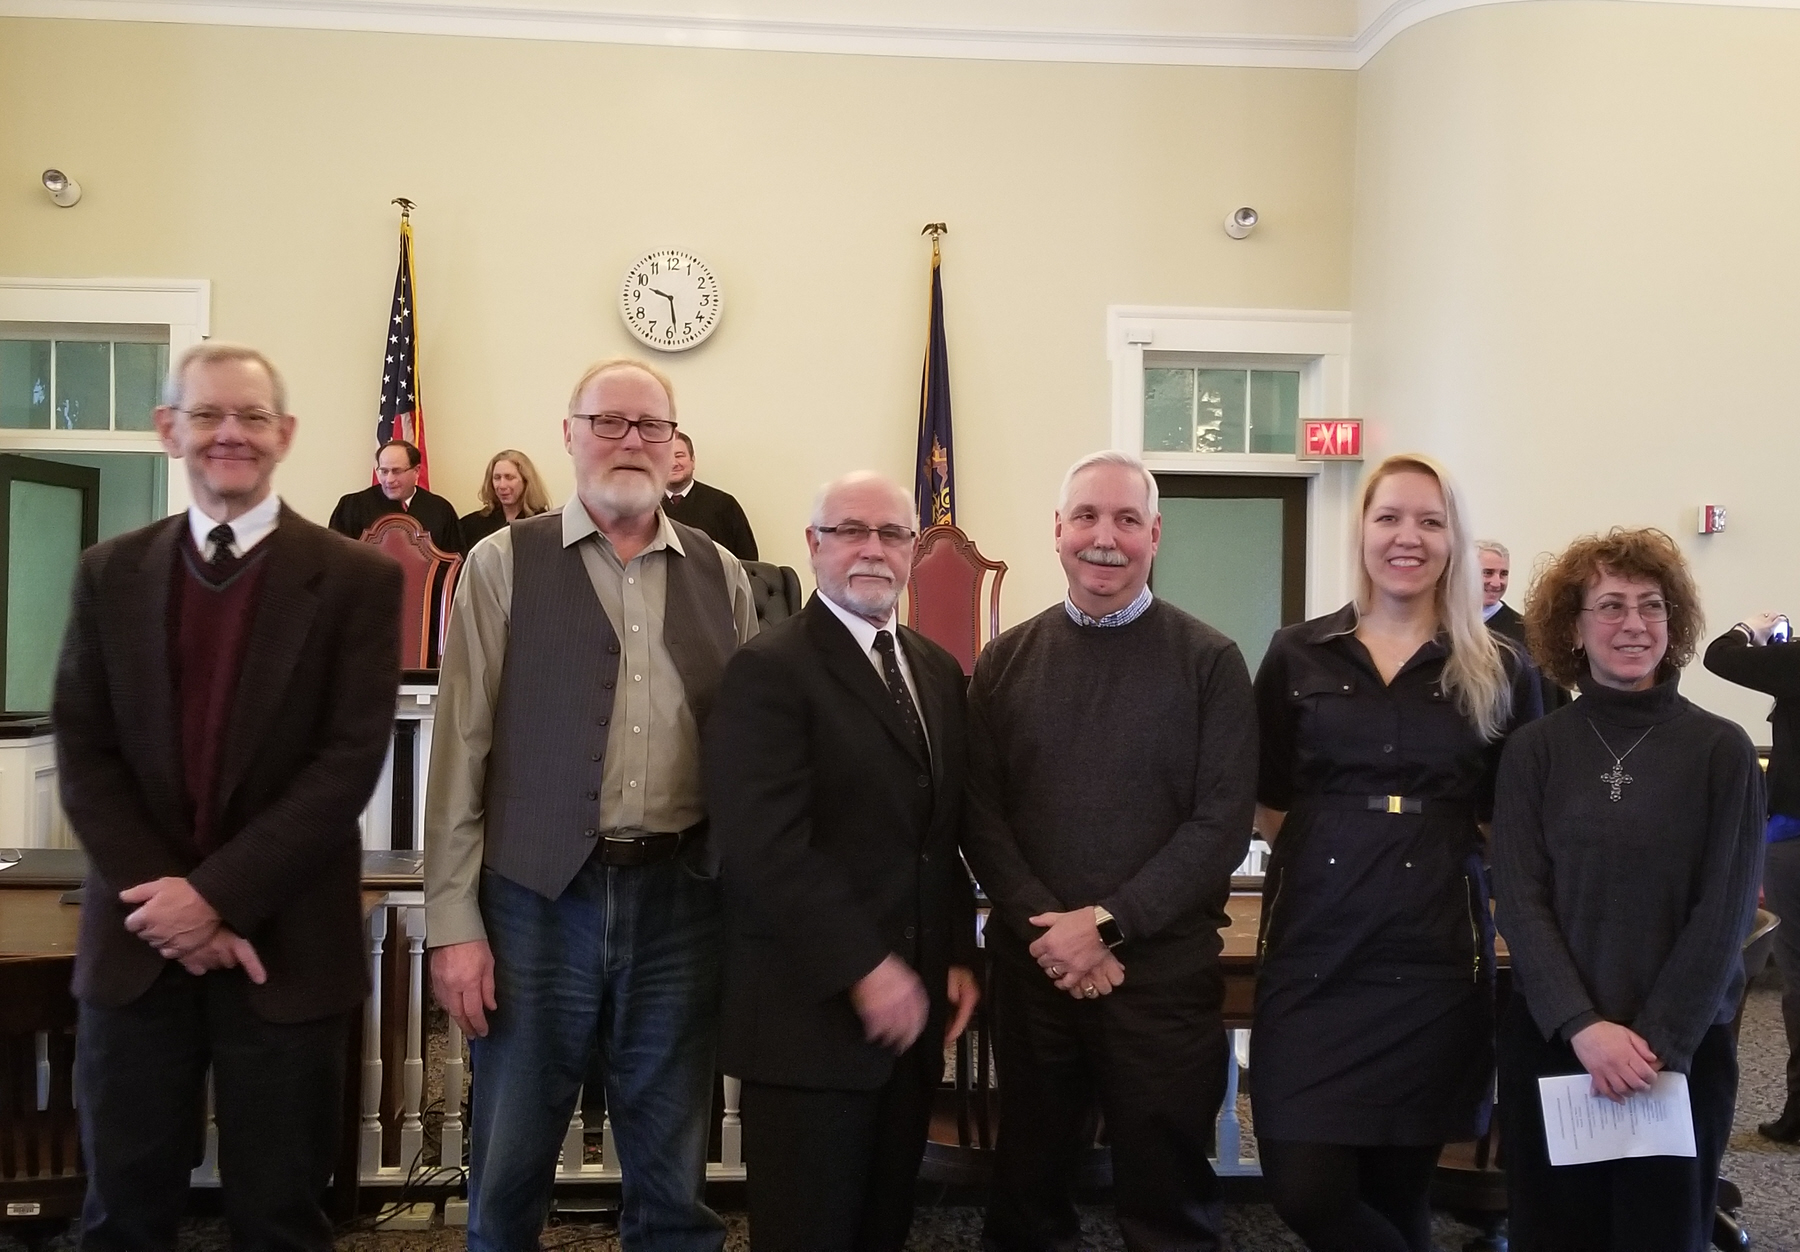 Newly sworn-in council members and mayor 20171229_092854